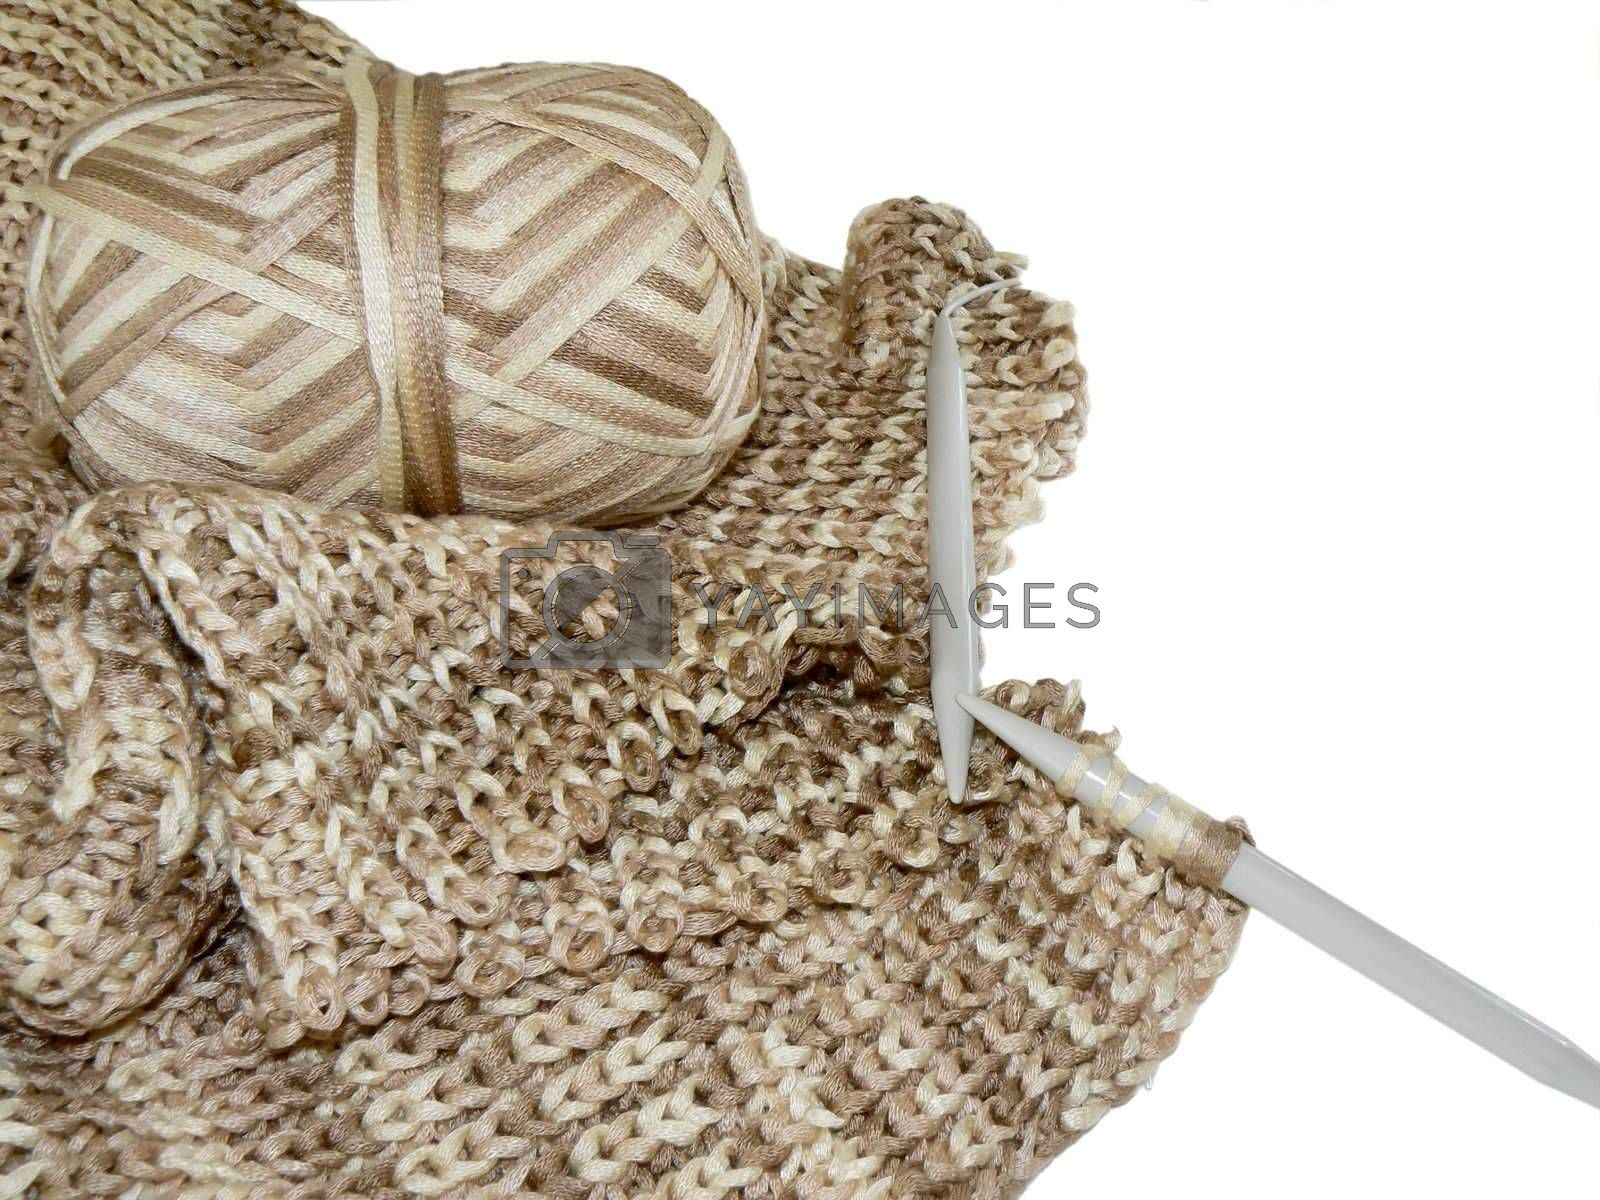 Part of woolen sweater, yarn and spokes on white